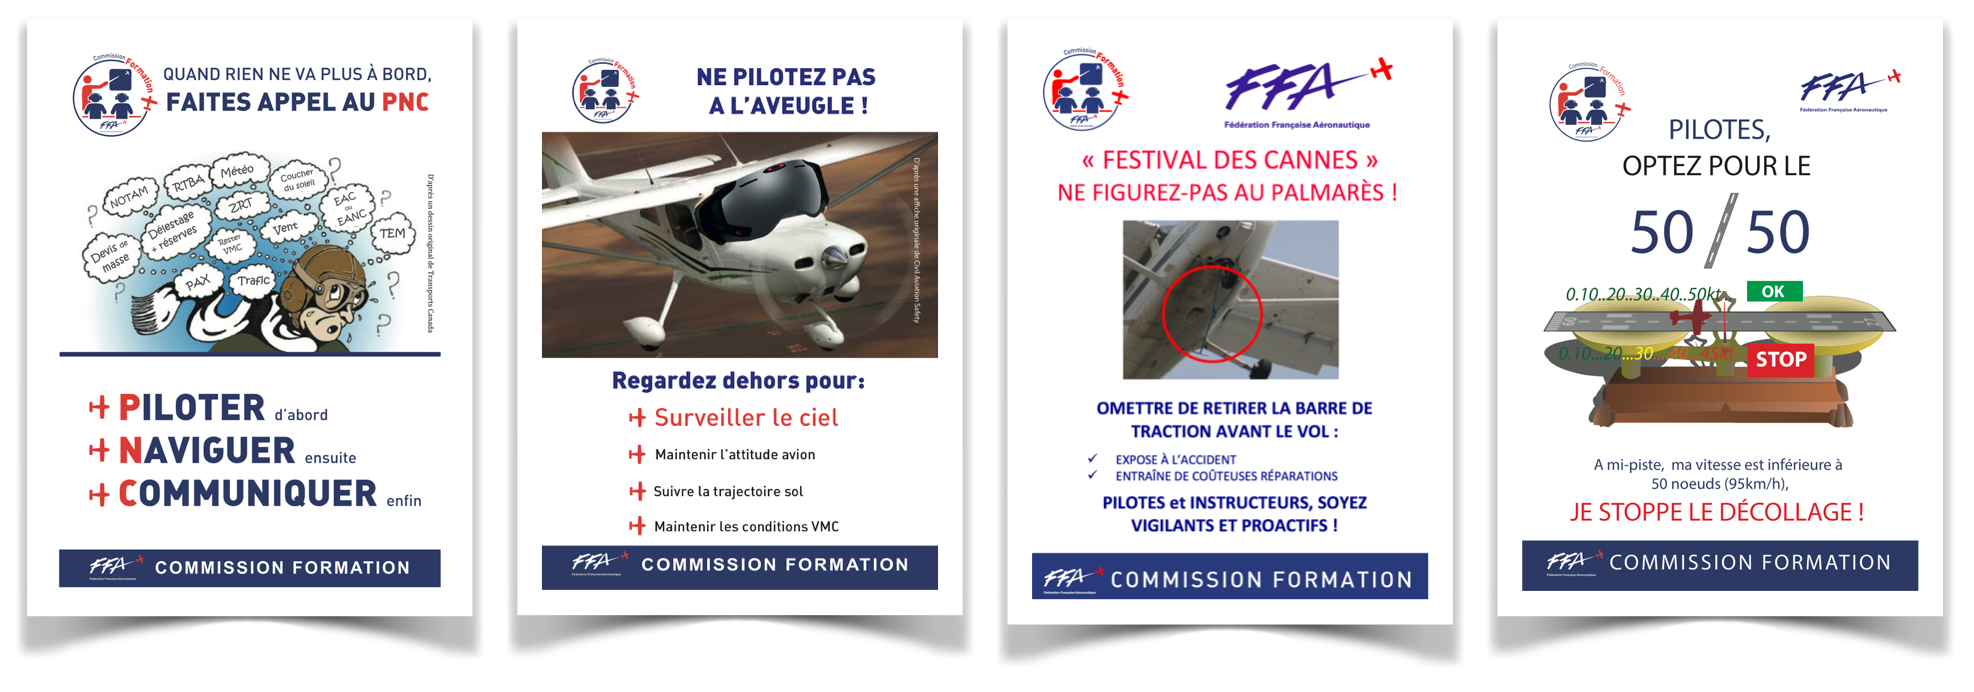 Sites de rencontre pour l'aviation